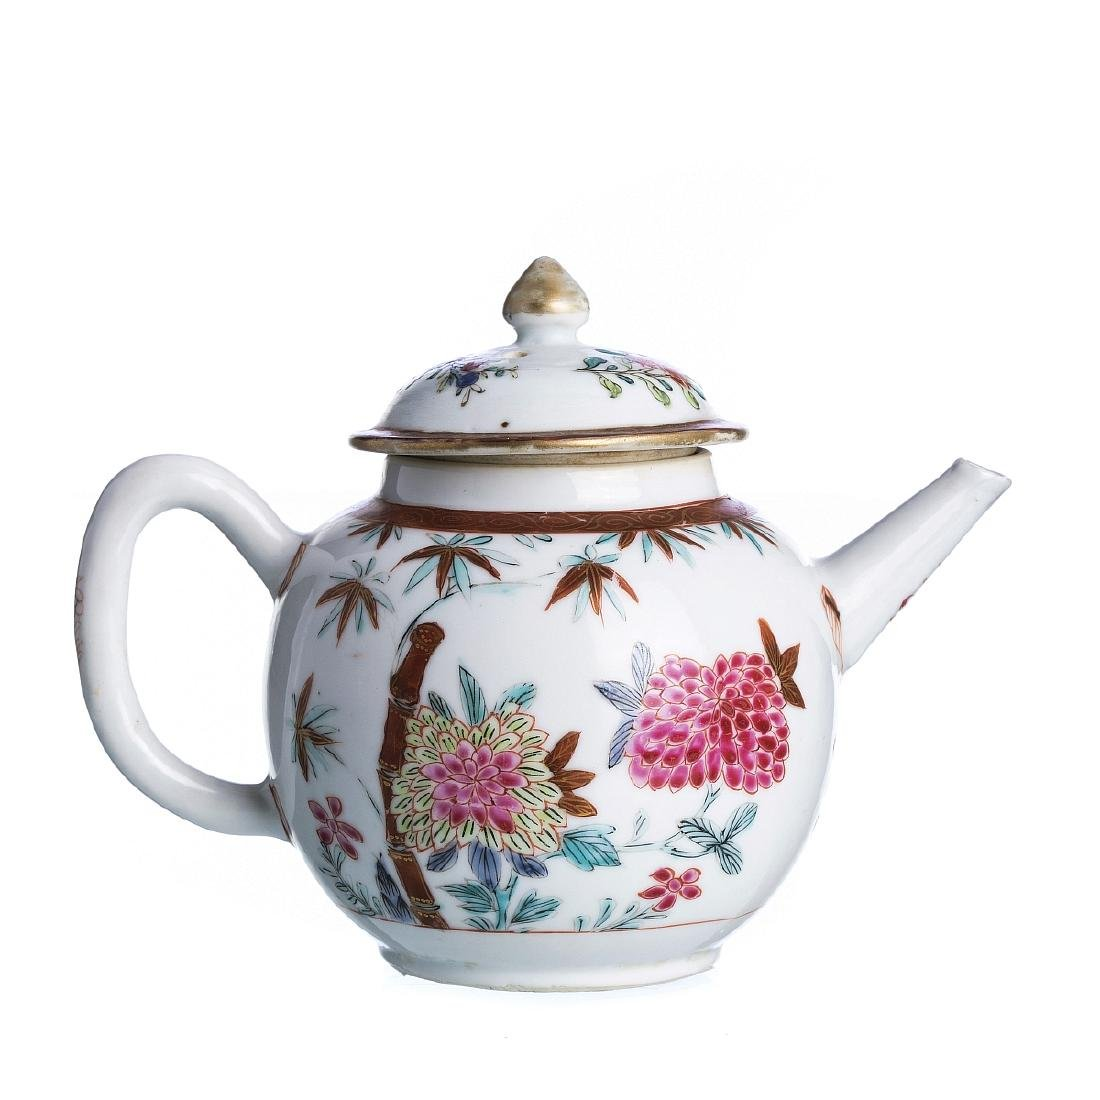 Chinese porcelain 'flowers and bamboo' teapot, Qia